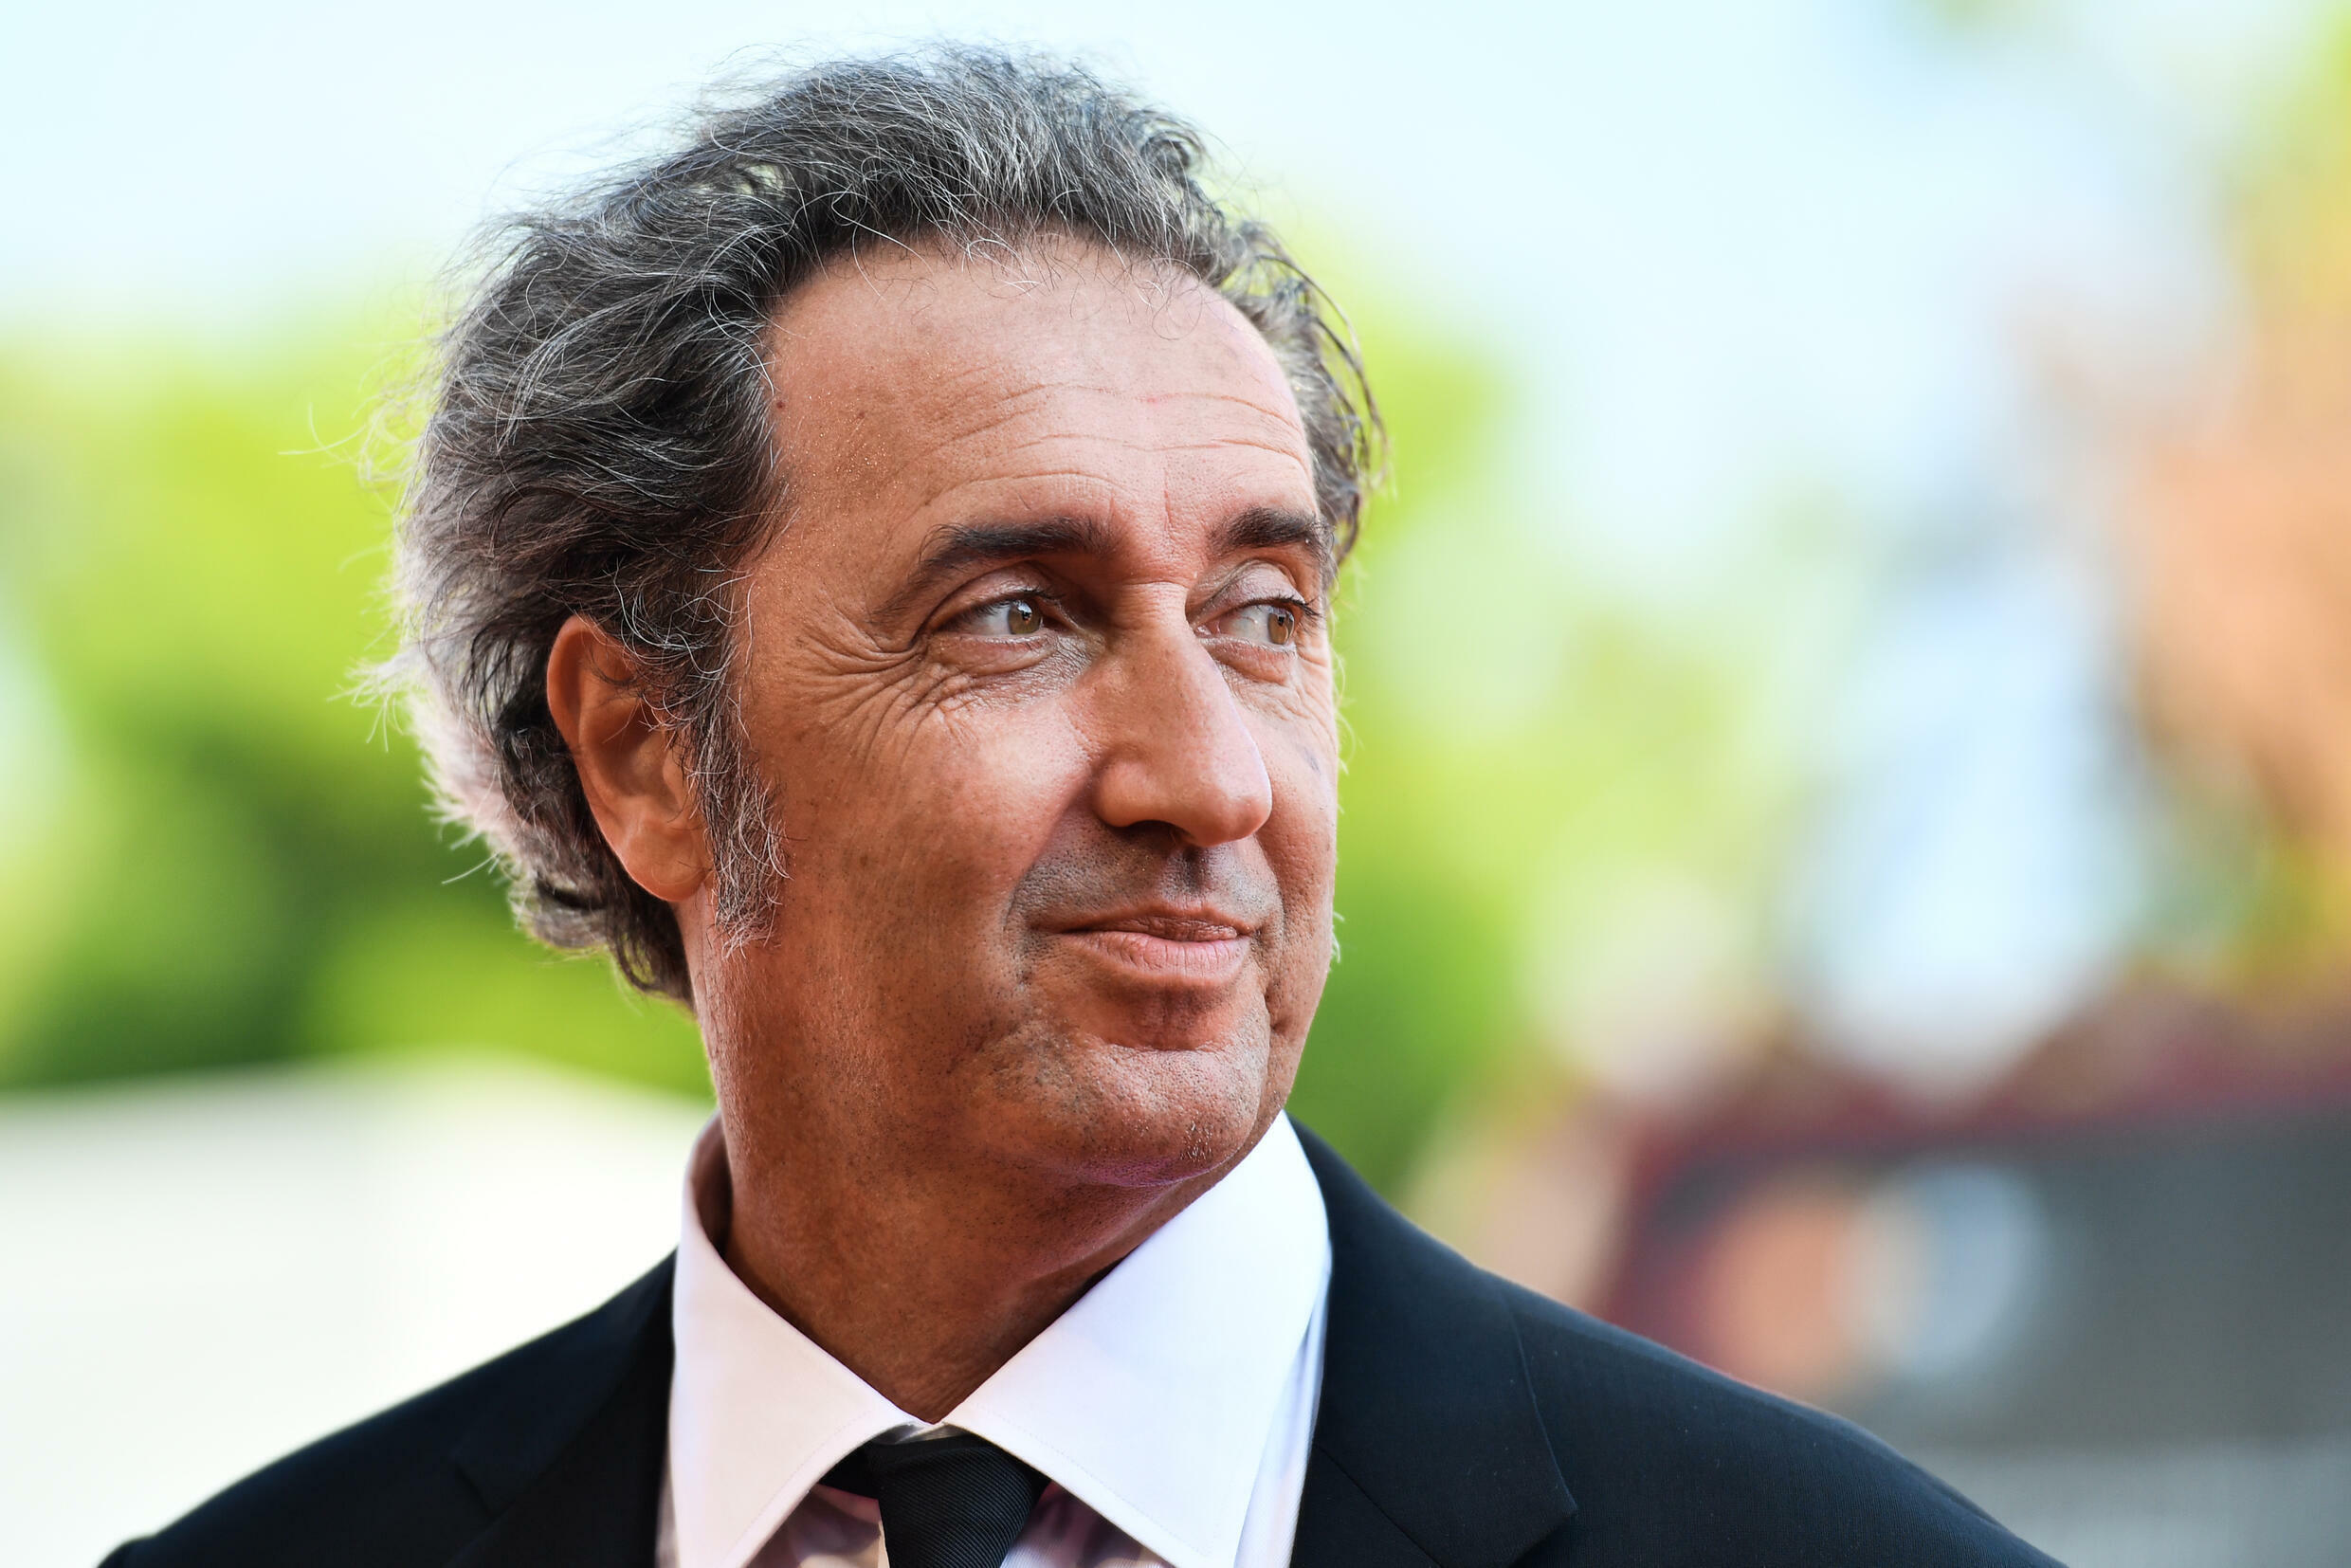 Italian director Paolo Sorrentino, on September 1, 2019 at the Venice Film Festival